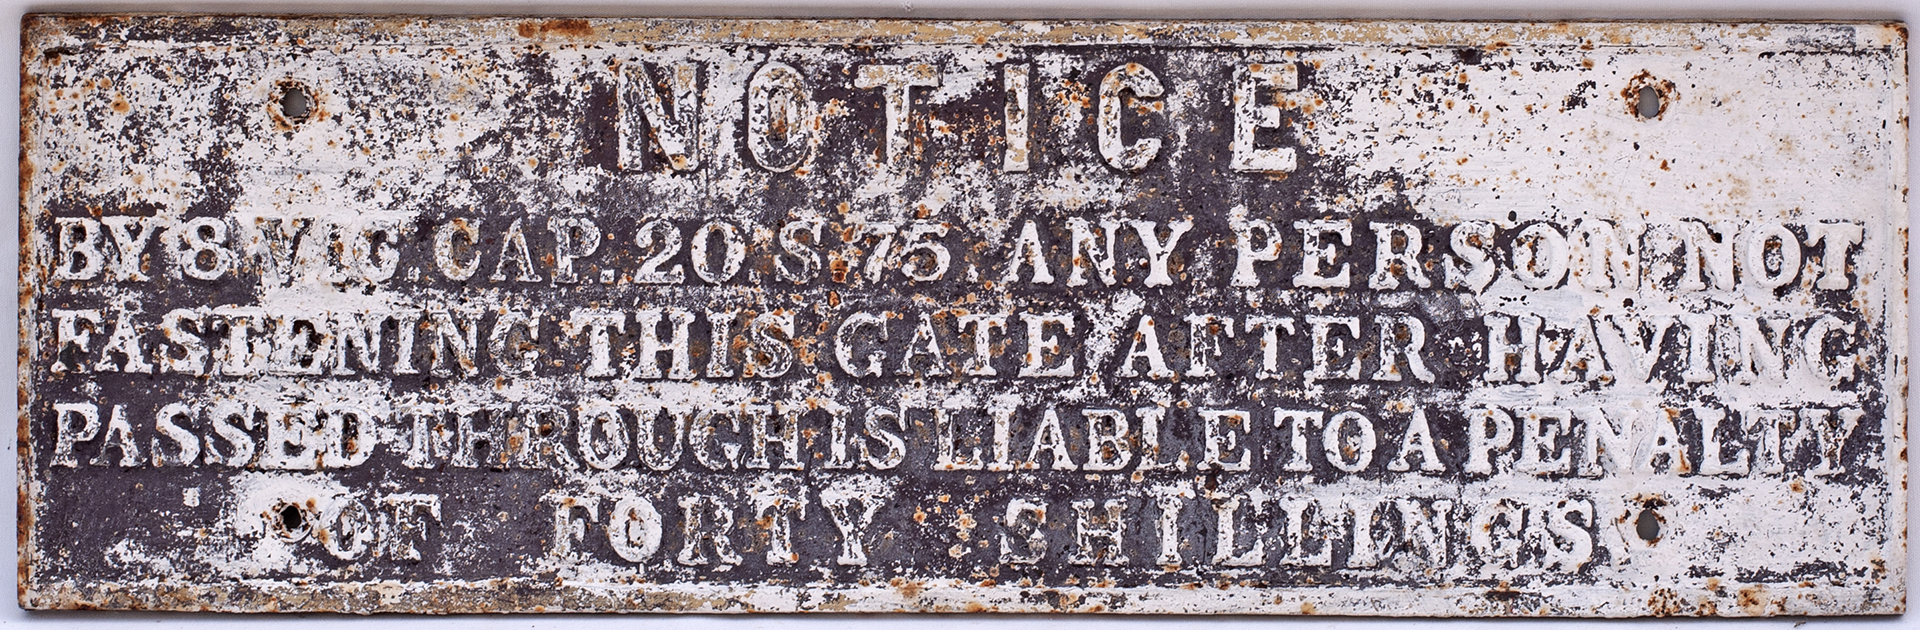 GWR Pre grouping Cast Iron Gate Notice.